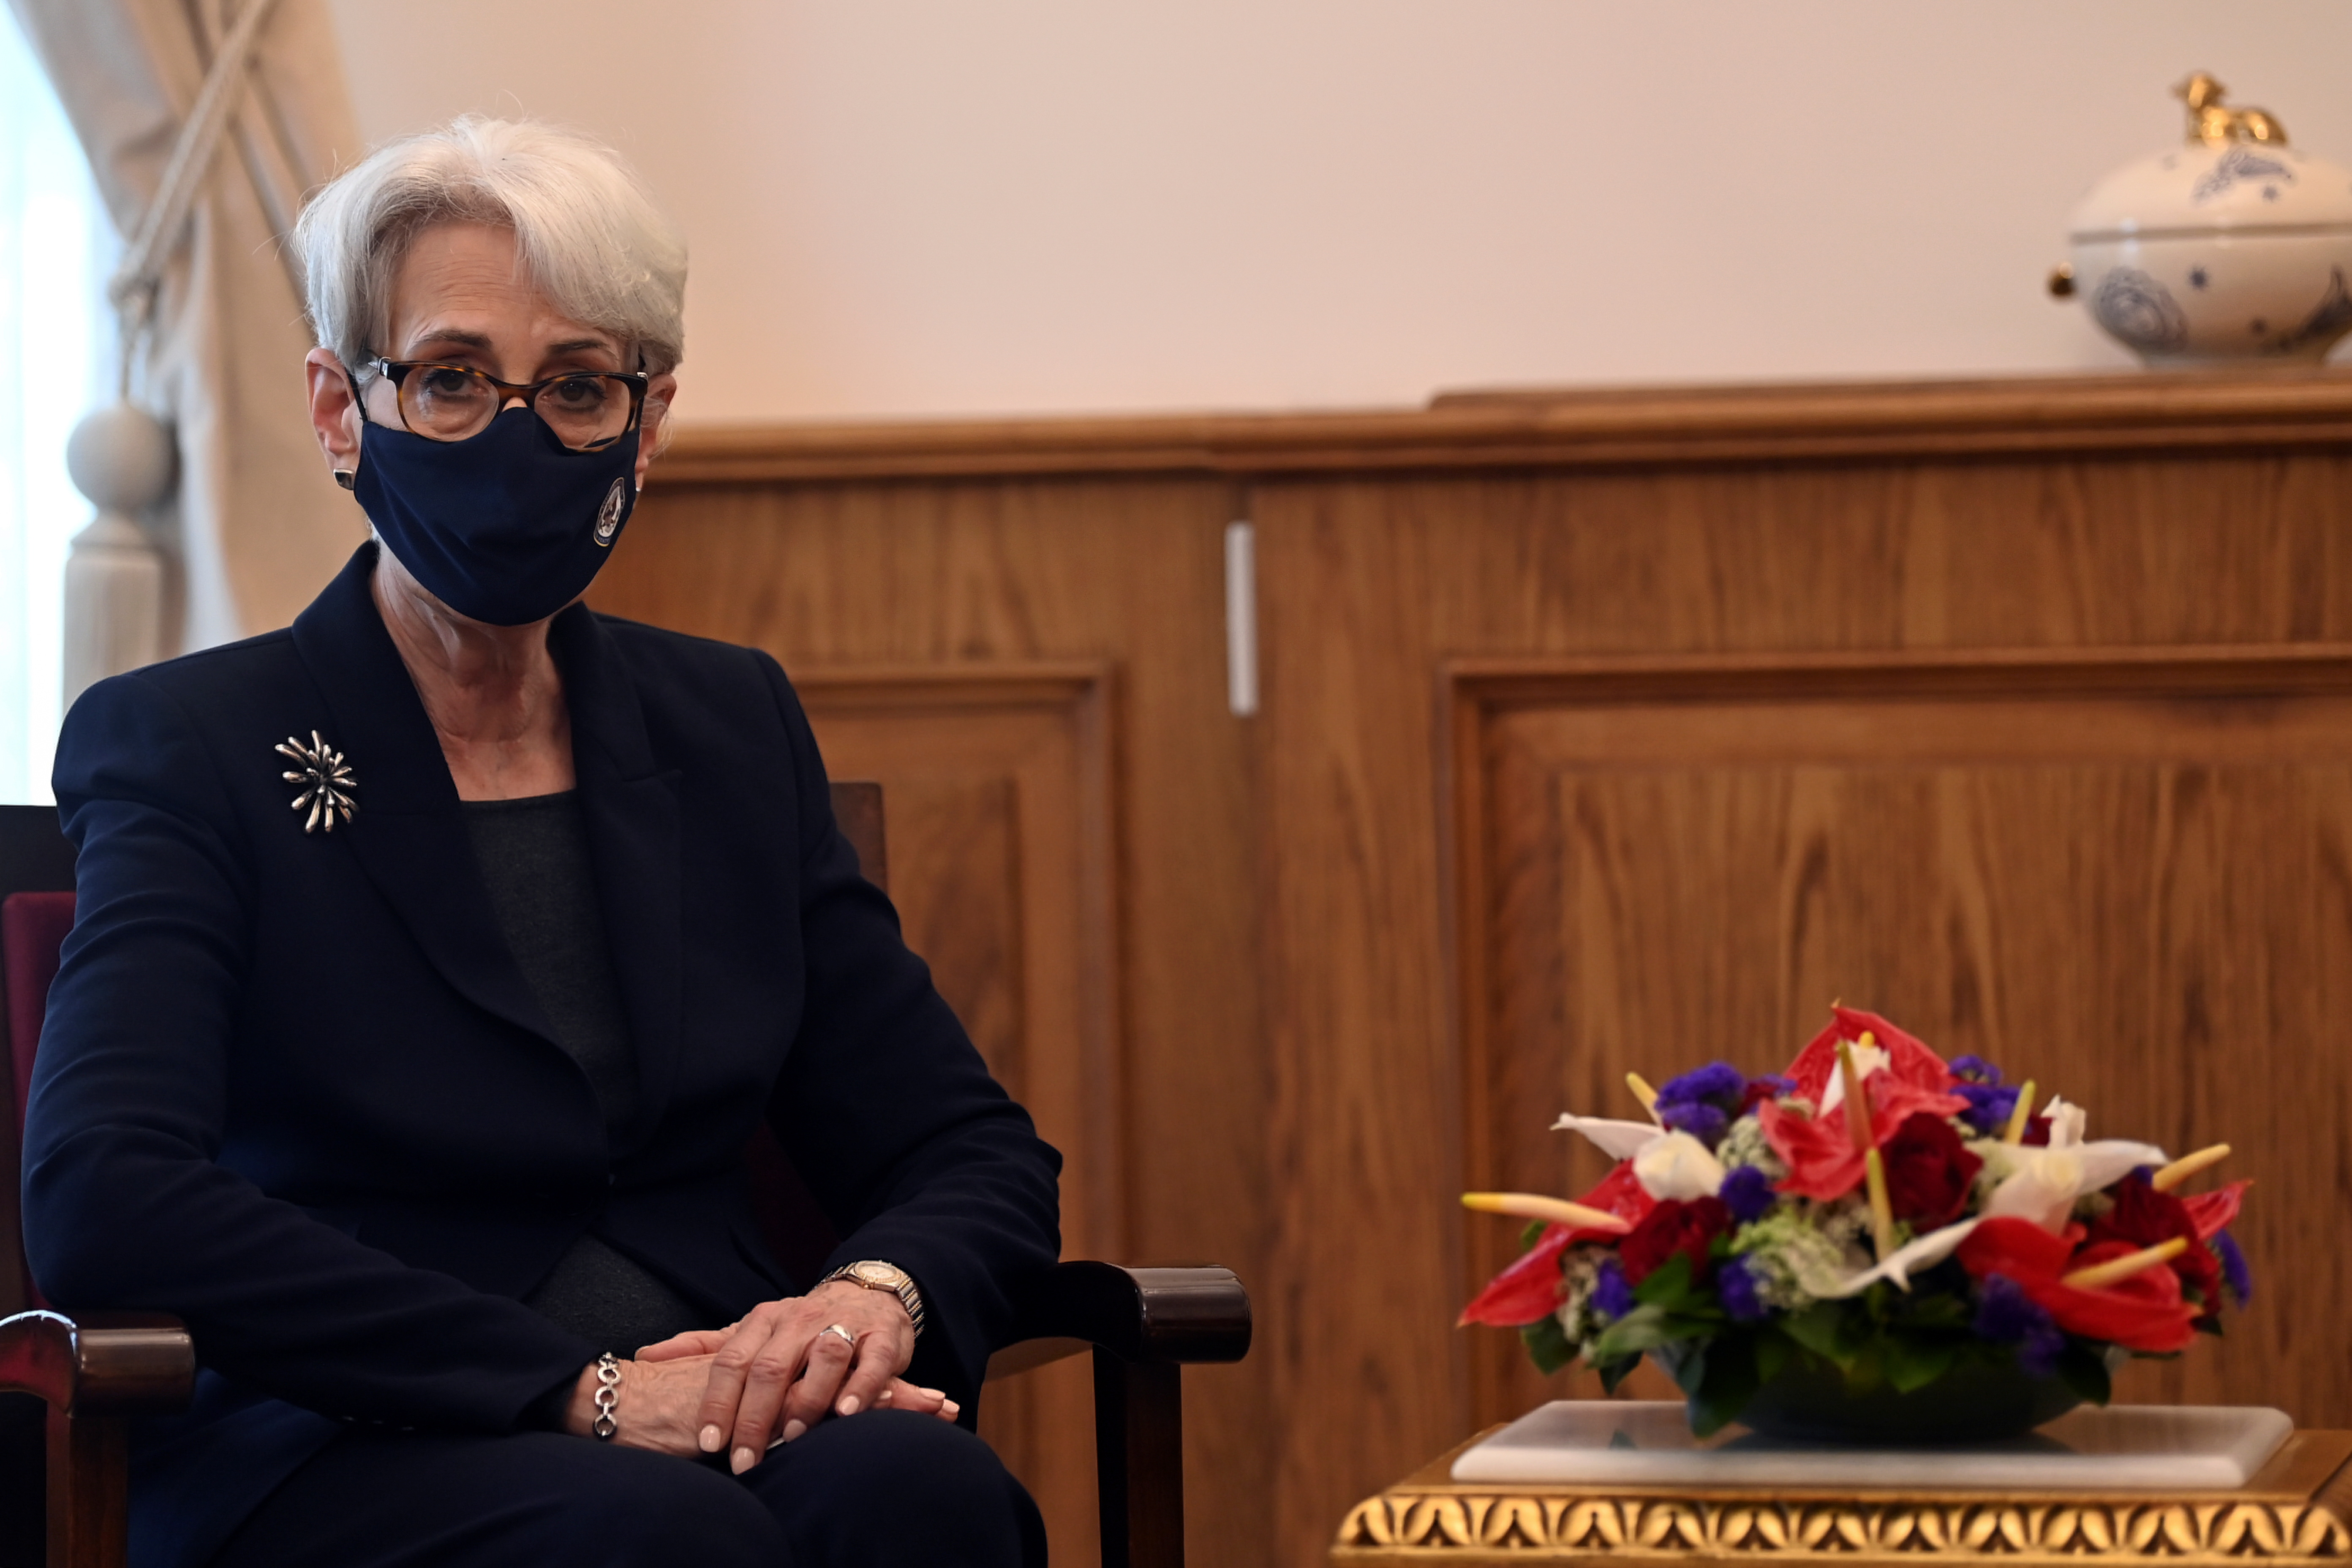 U.S. Deputy Secretary of State Wendy Sherman is seen during her visit to the Orthodox Patriarchate in Istanbul, Turkey May 29, 2021. Ozan Kose/Pool via REUTERS/Files